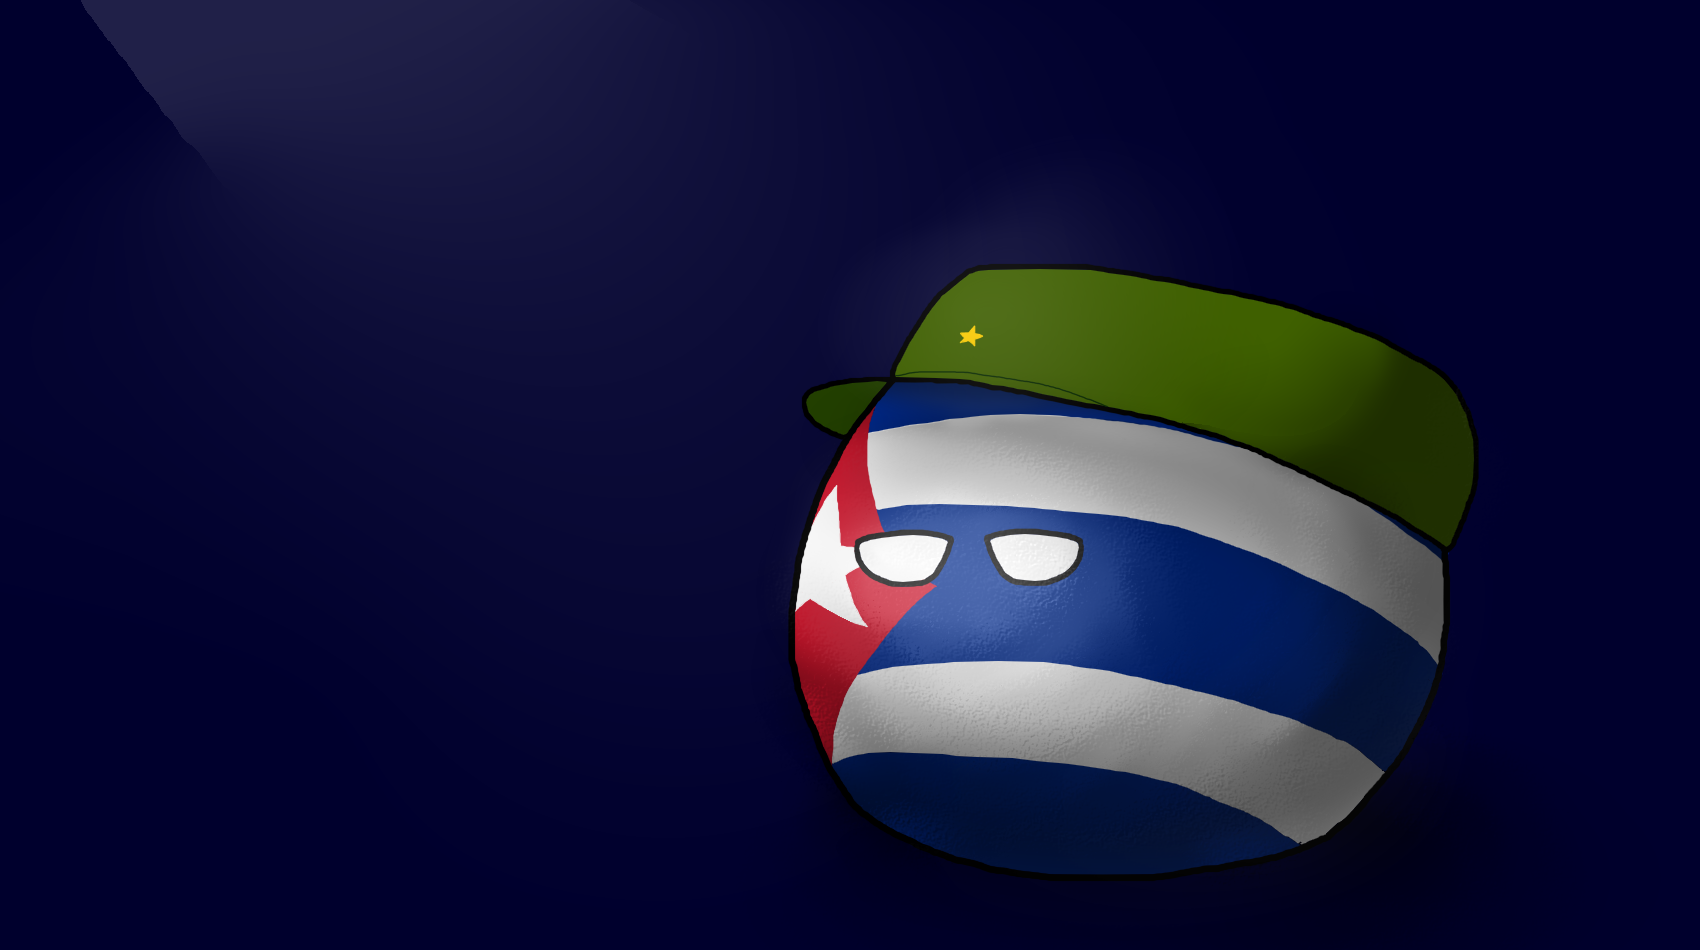 File:Cubaball.png